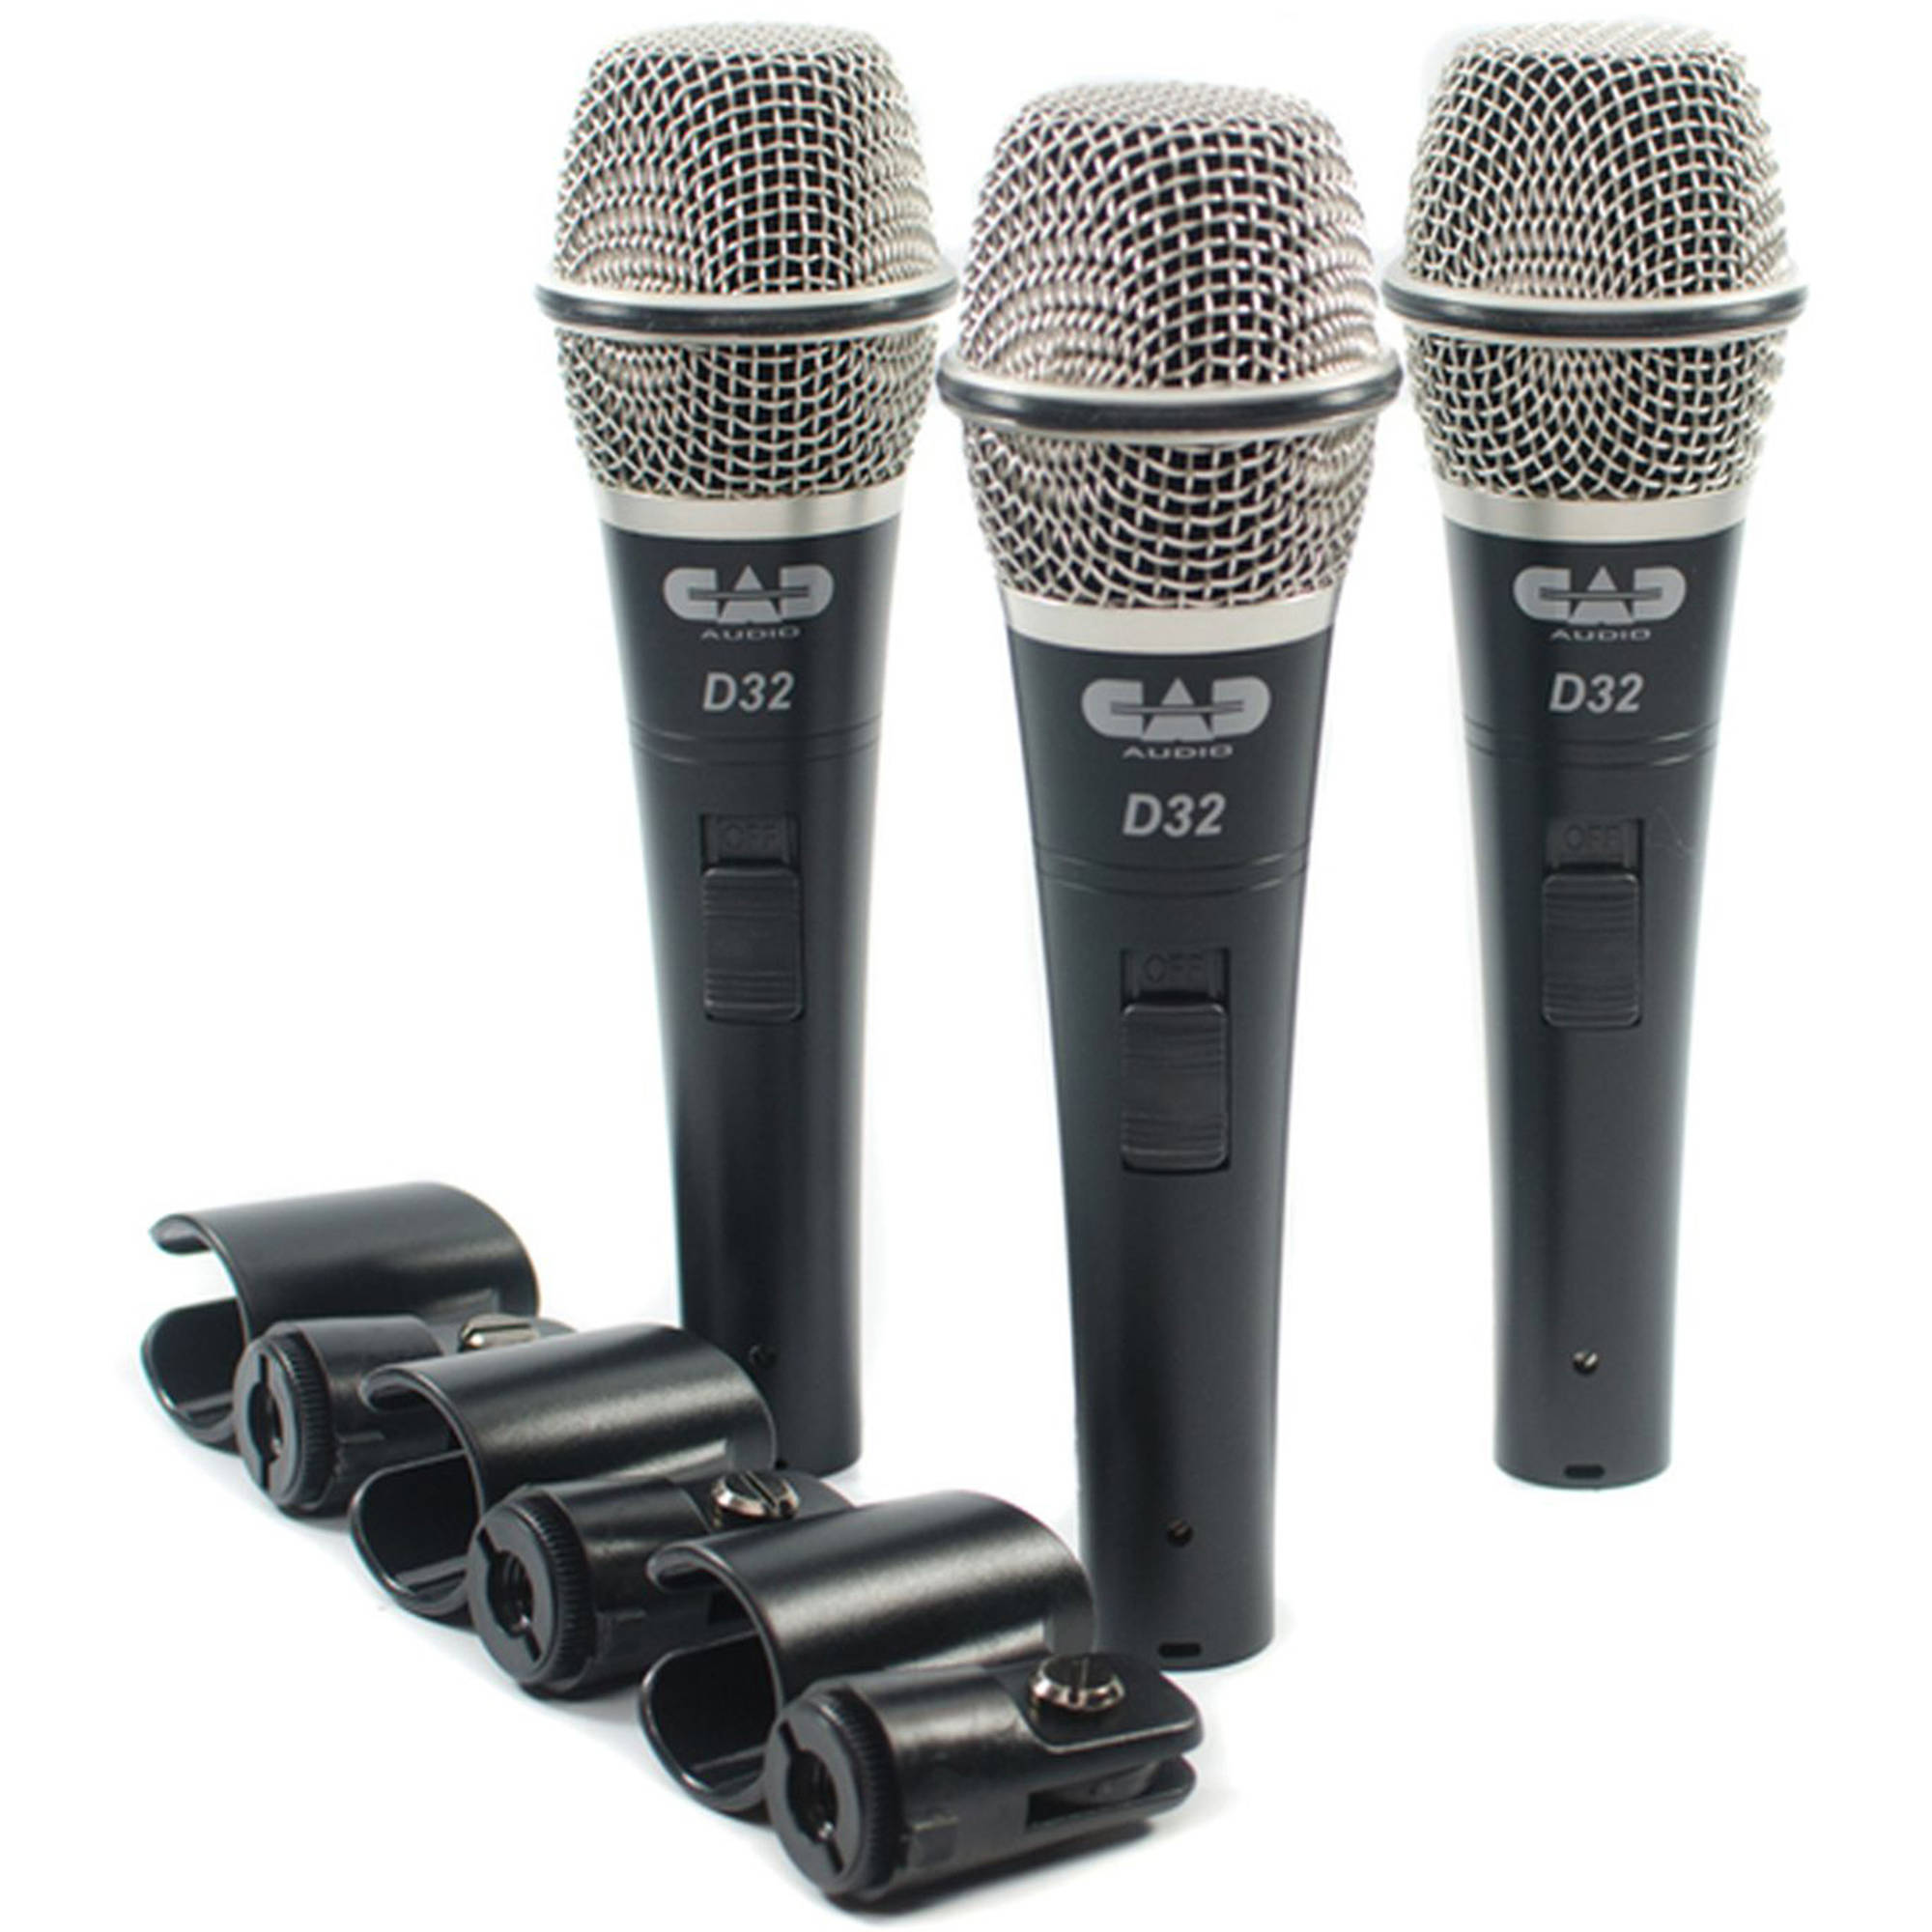 Supercardioid Dynamic Vocal Microphone, 3 Pack by CAD Audio